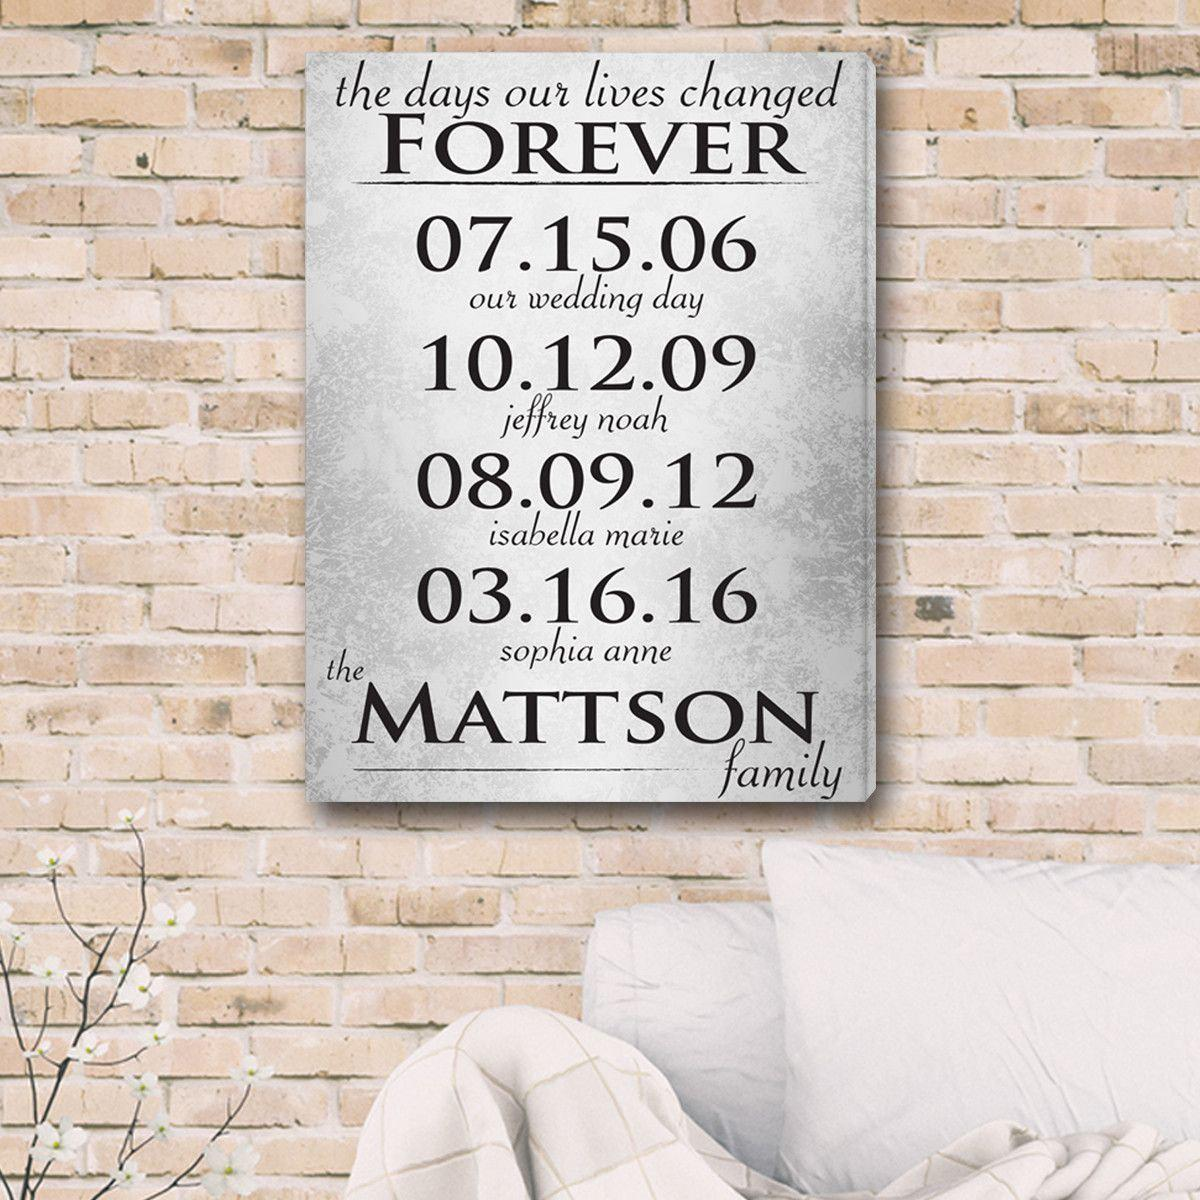 The-Days-Our-Lives-Changed-Forever-Personalized-Canvas-Print